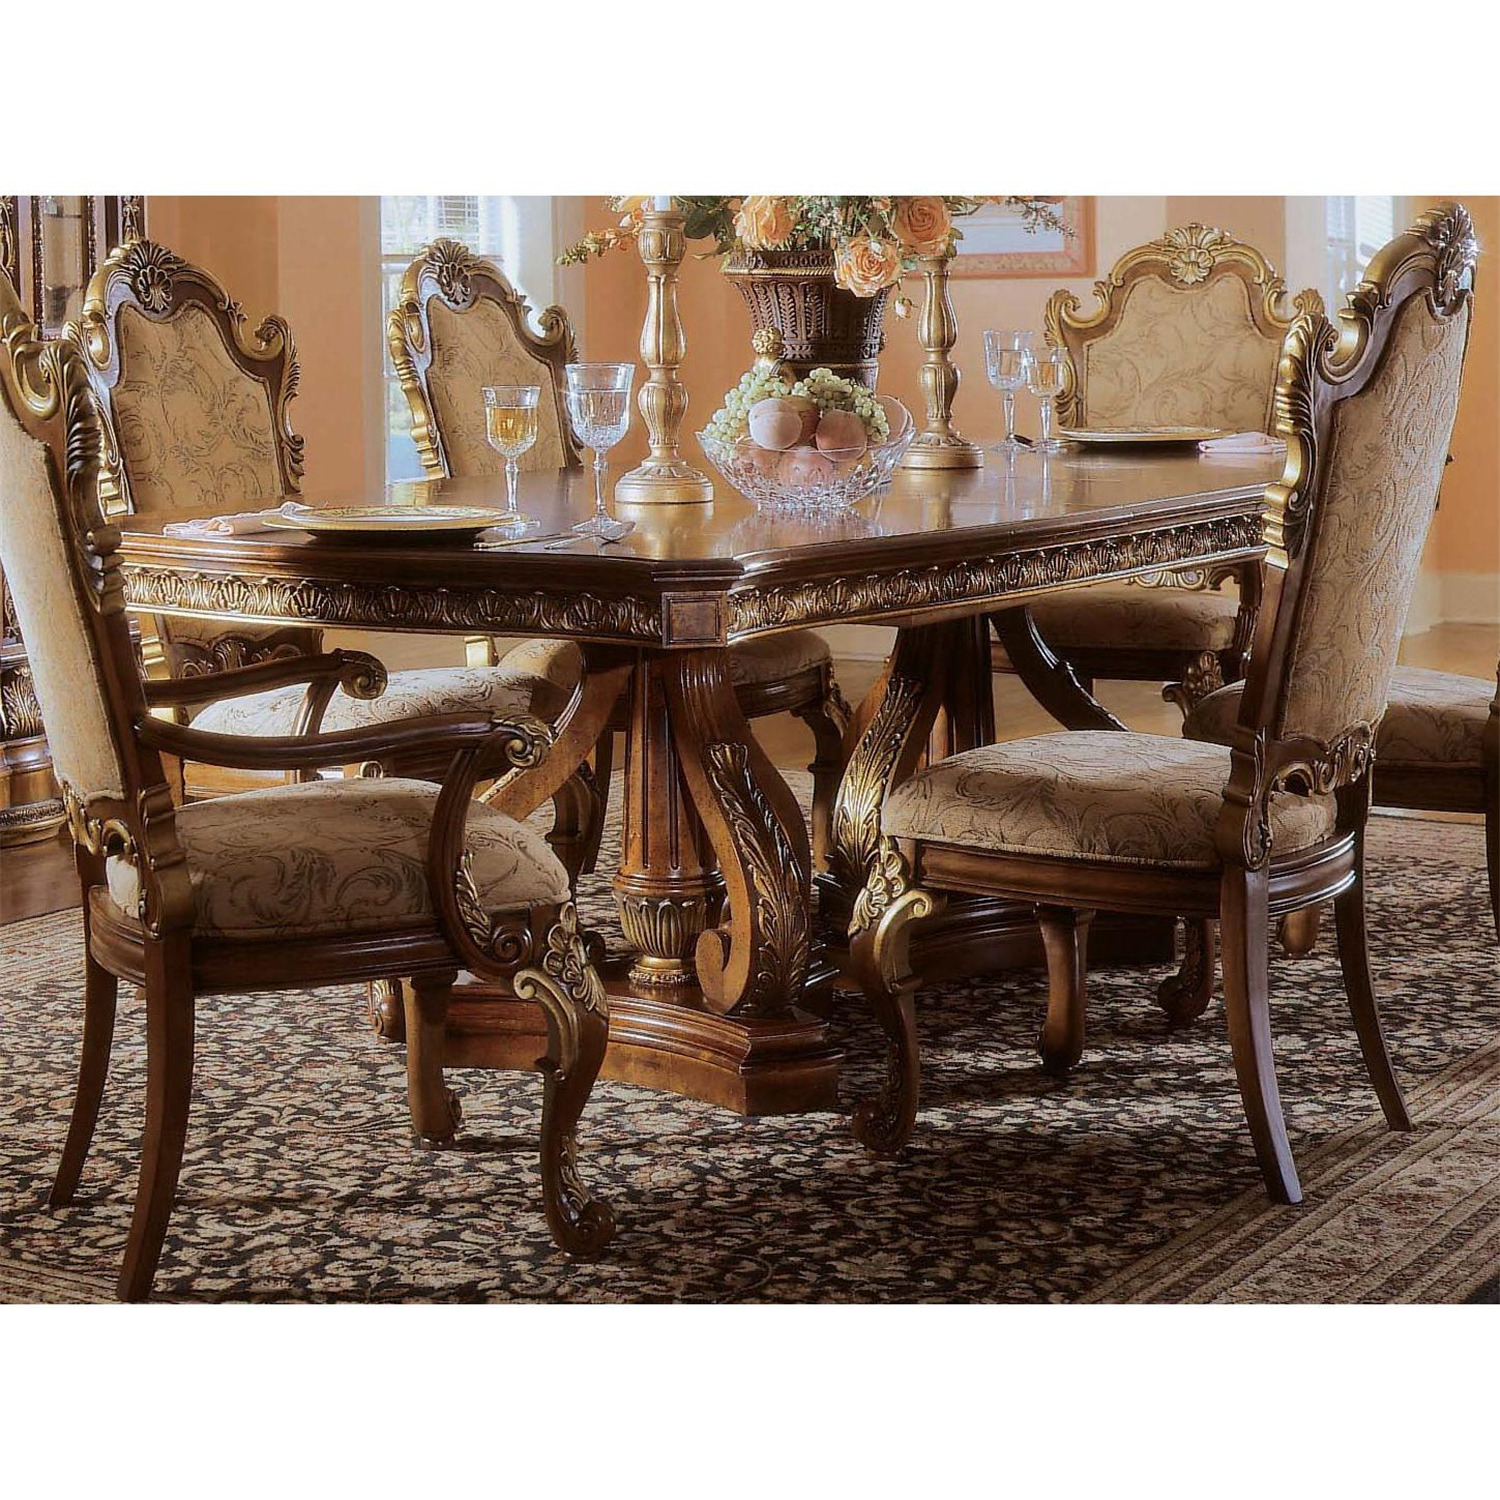 Royal dining table sets images for Royal dining table